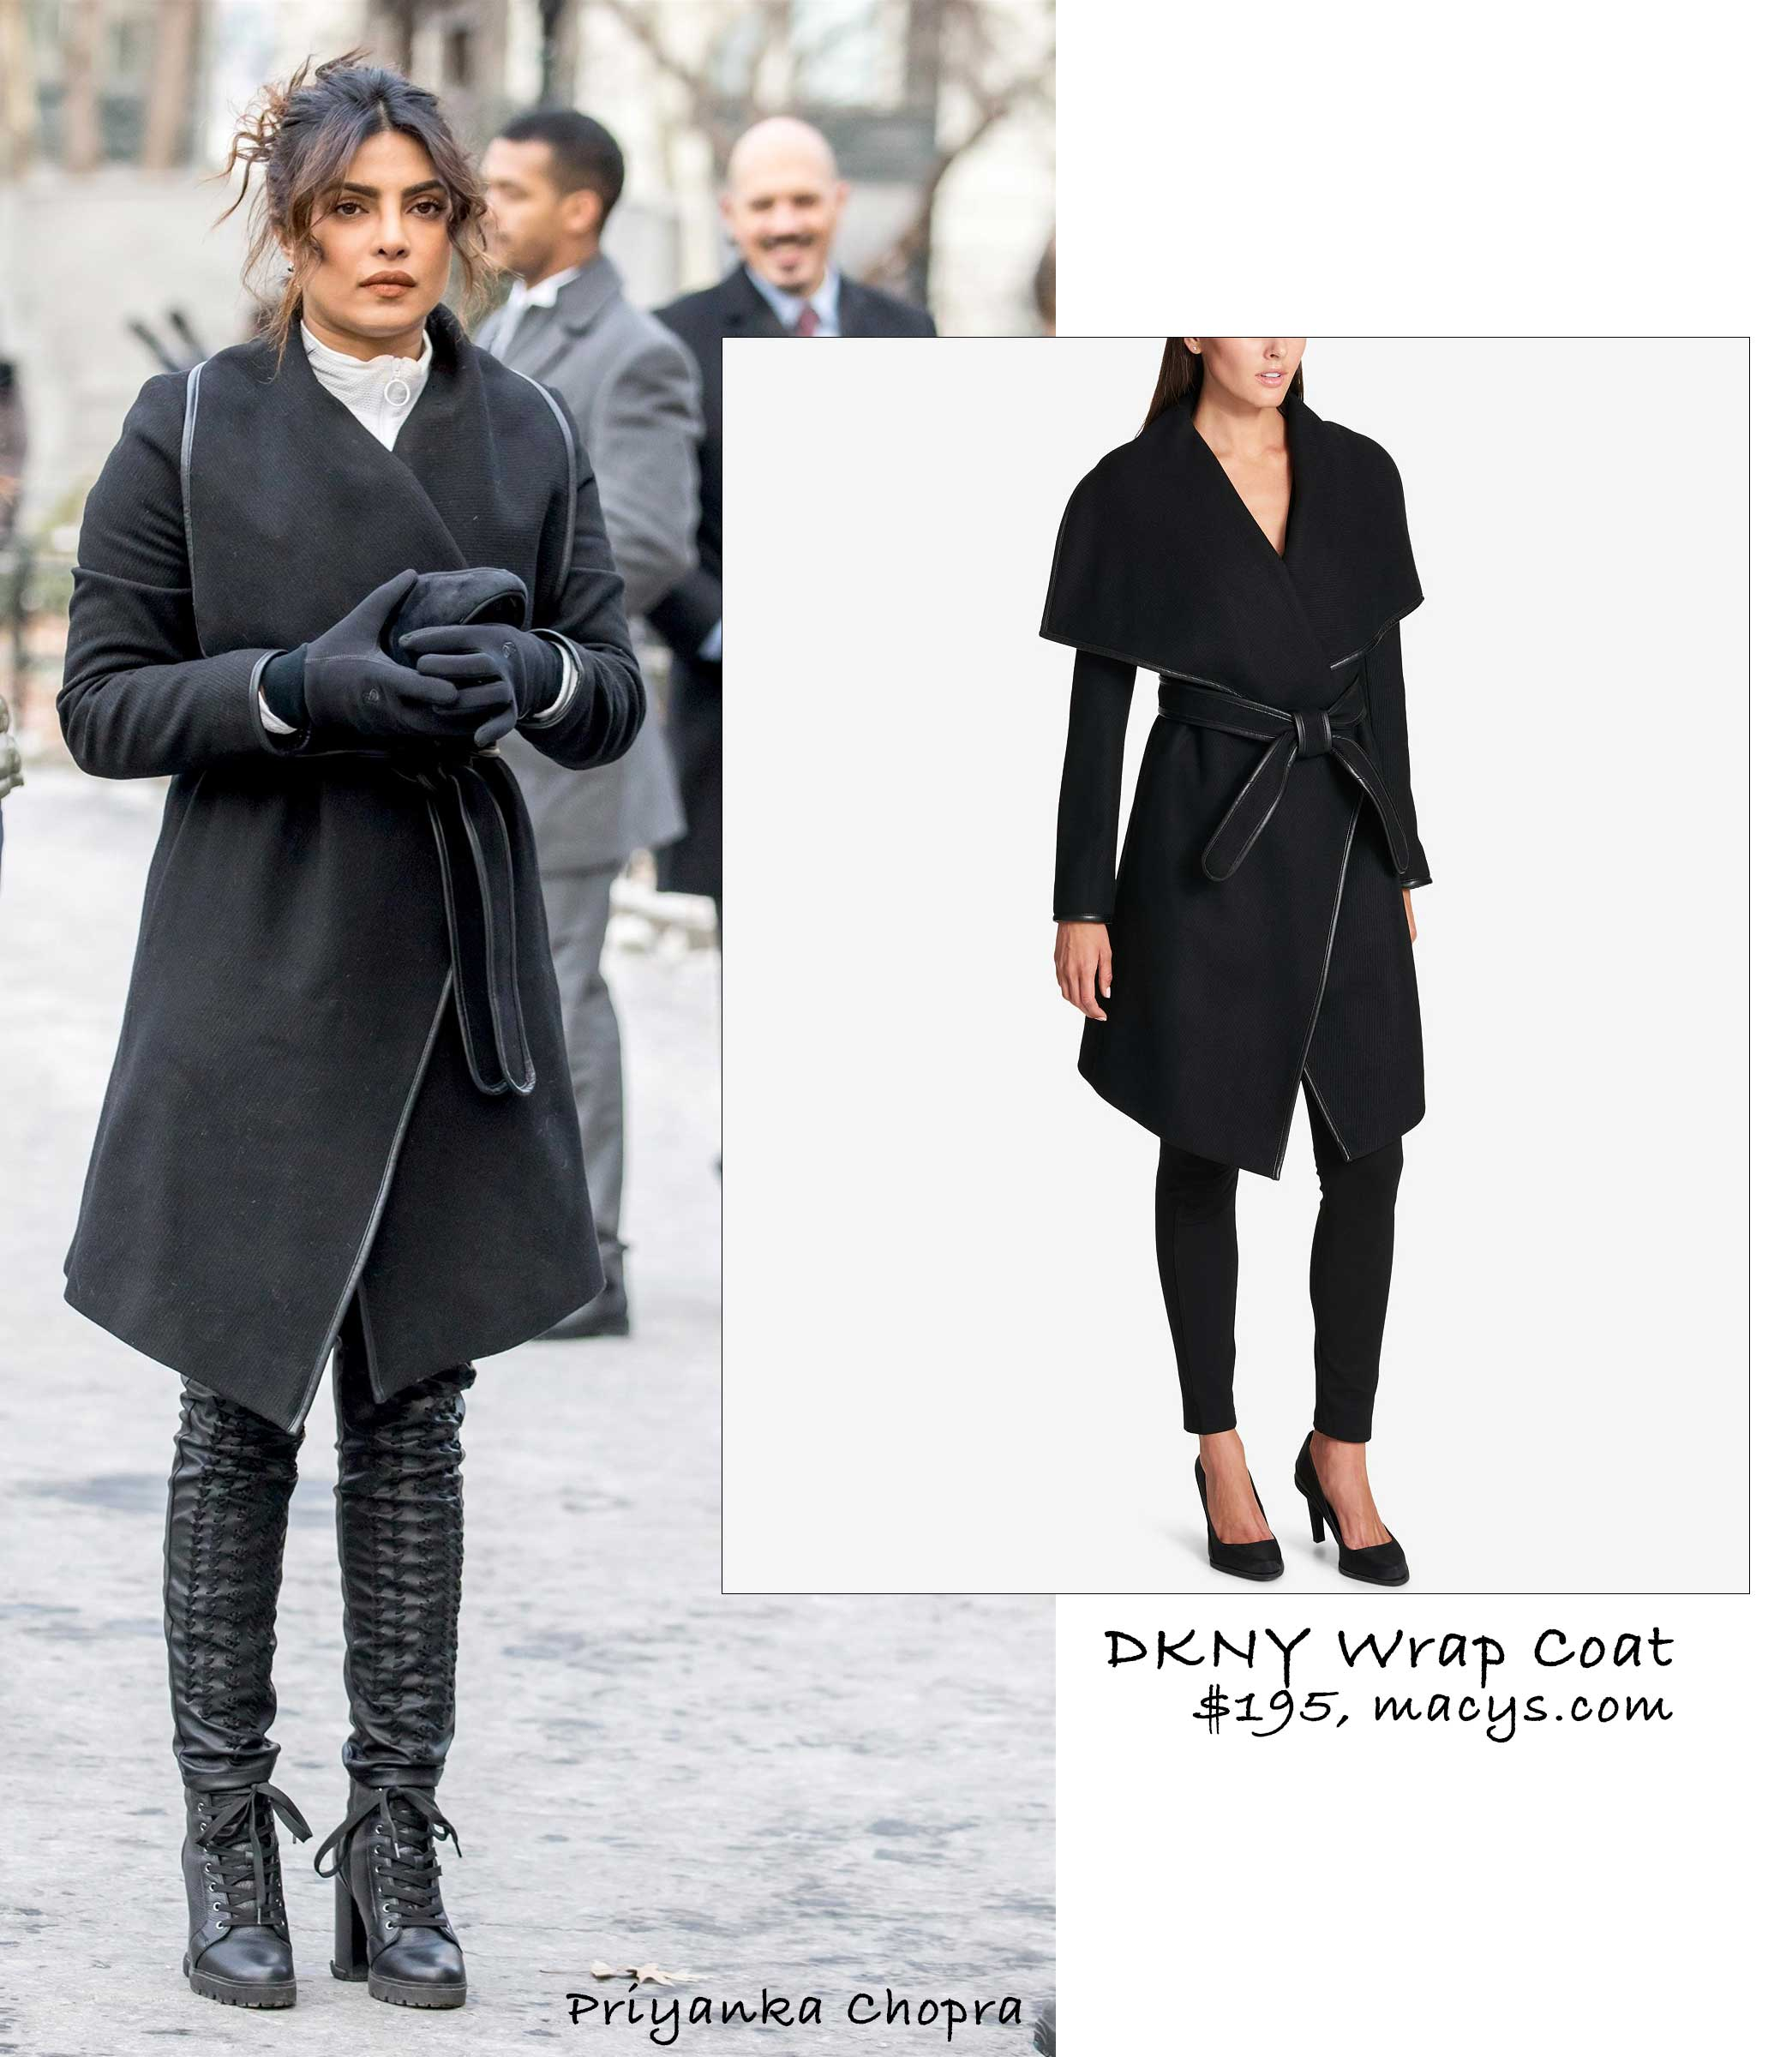 Priyanka Chopra in DKNY Wrap Coat (under $200!)